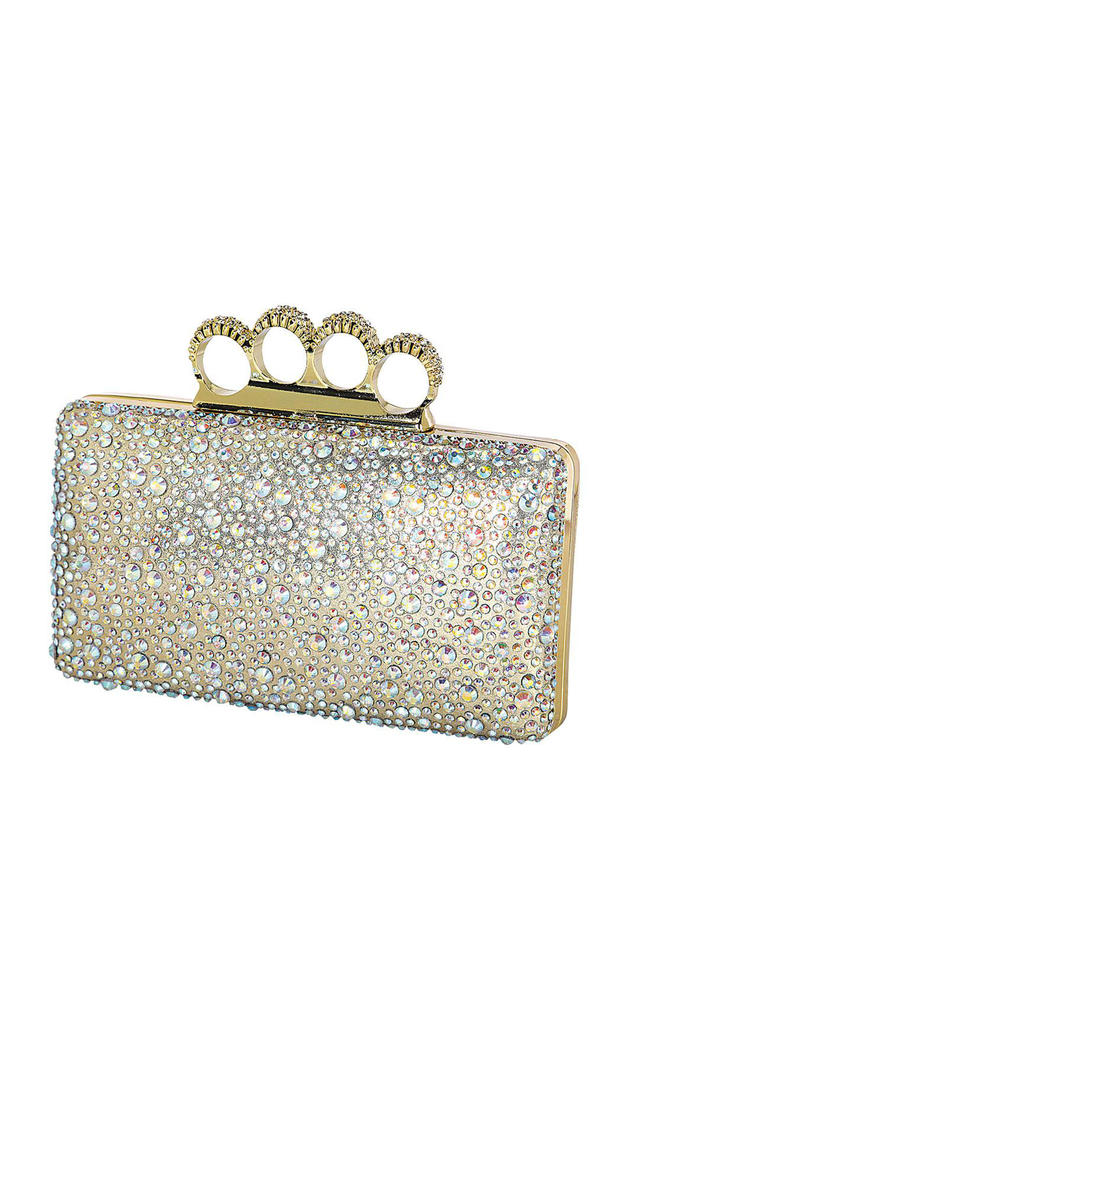 Rhinestone Metal Frame Knuckle Clutch